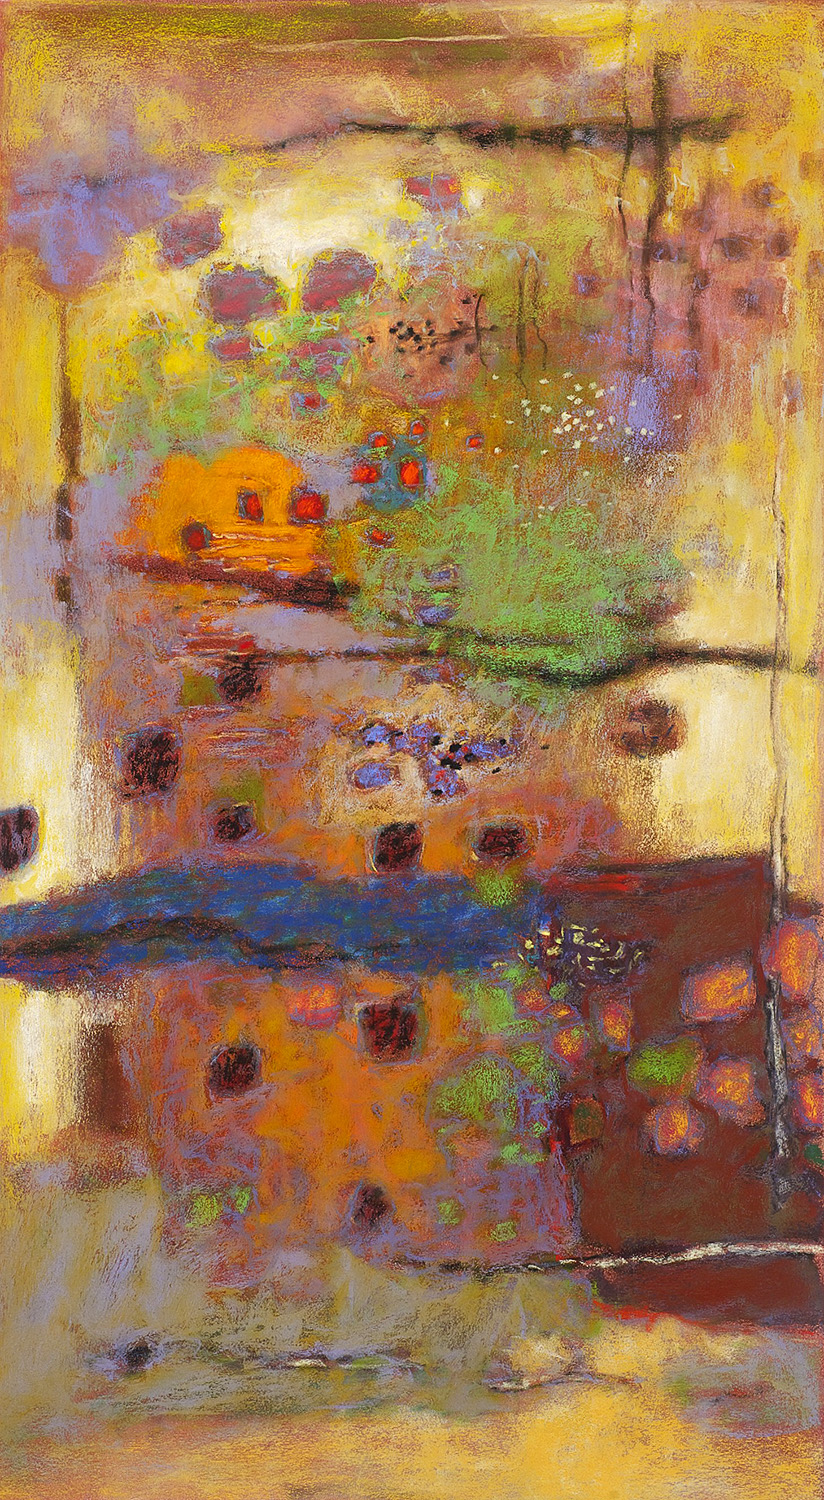 Complexity of Life  | pastel on paper | 36 x 20"